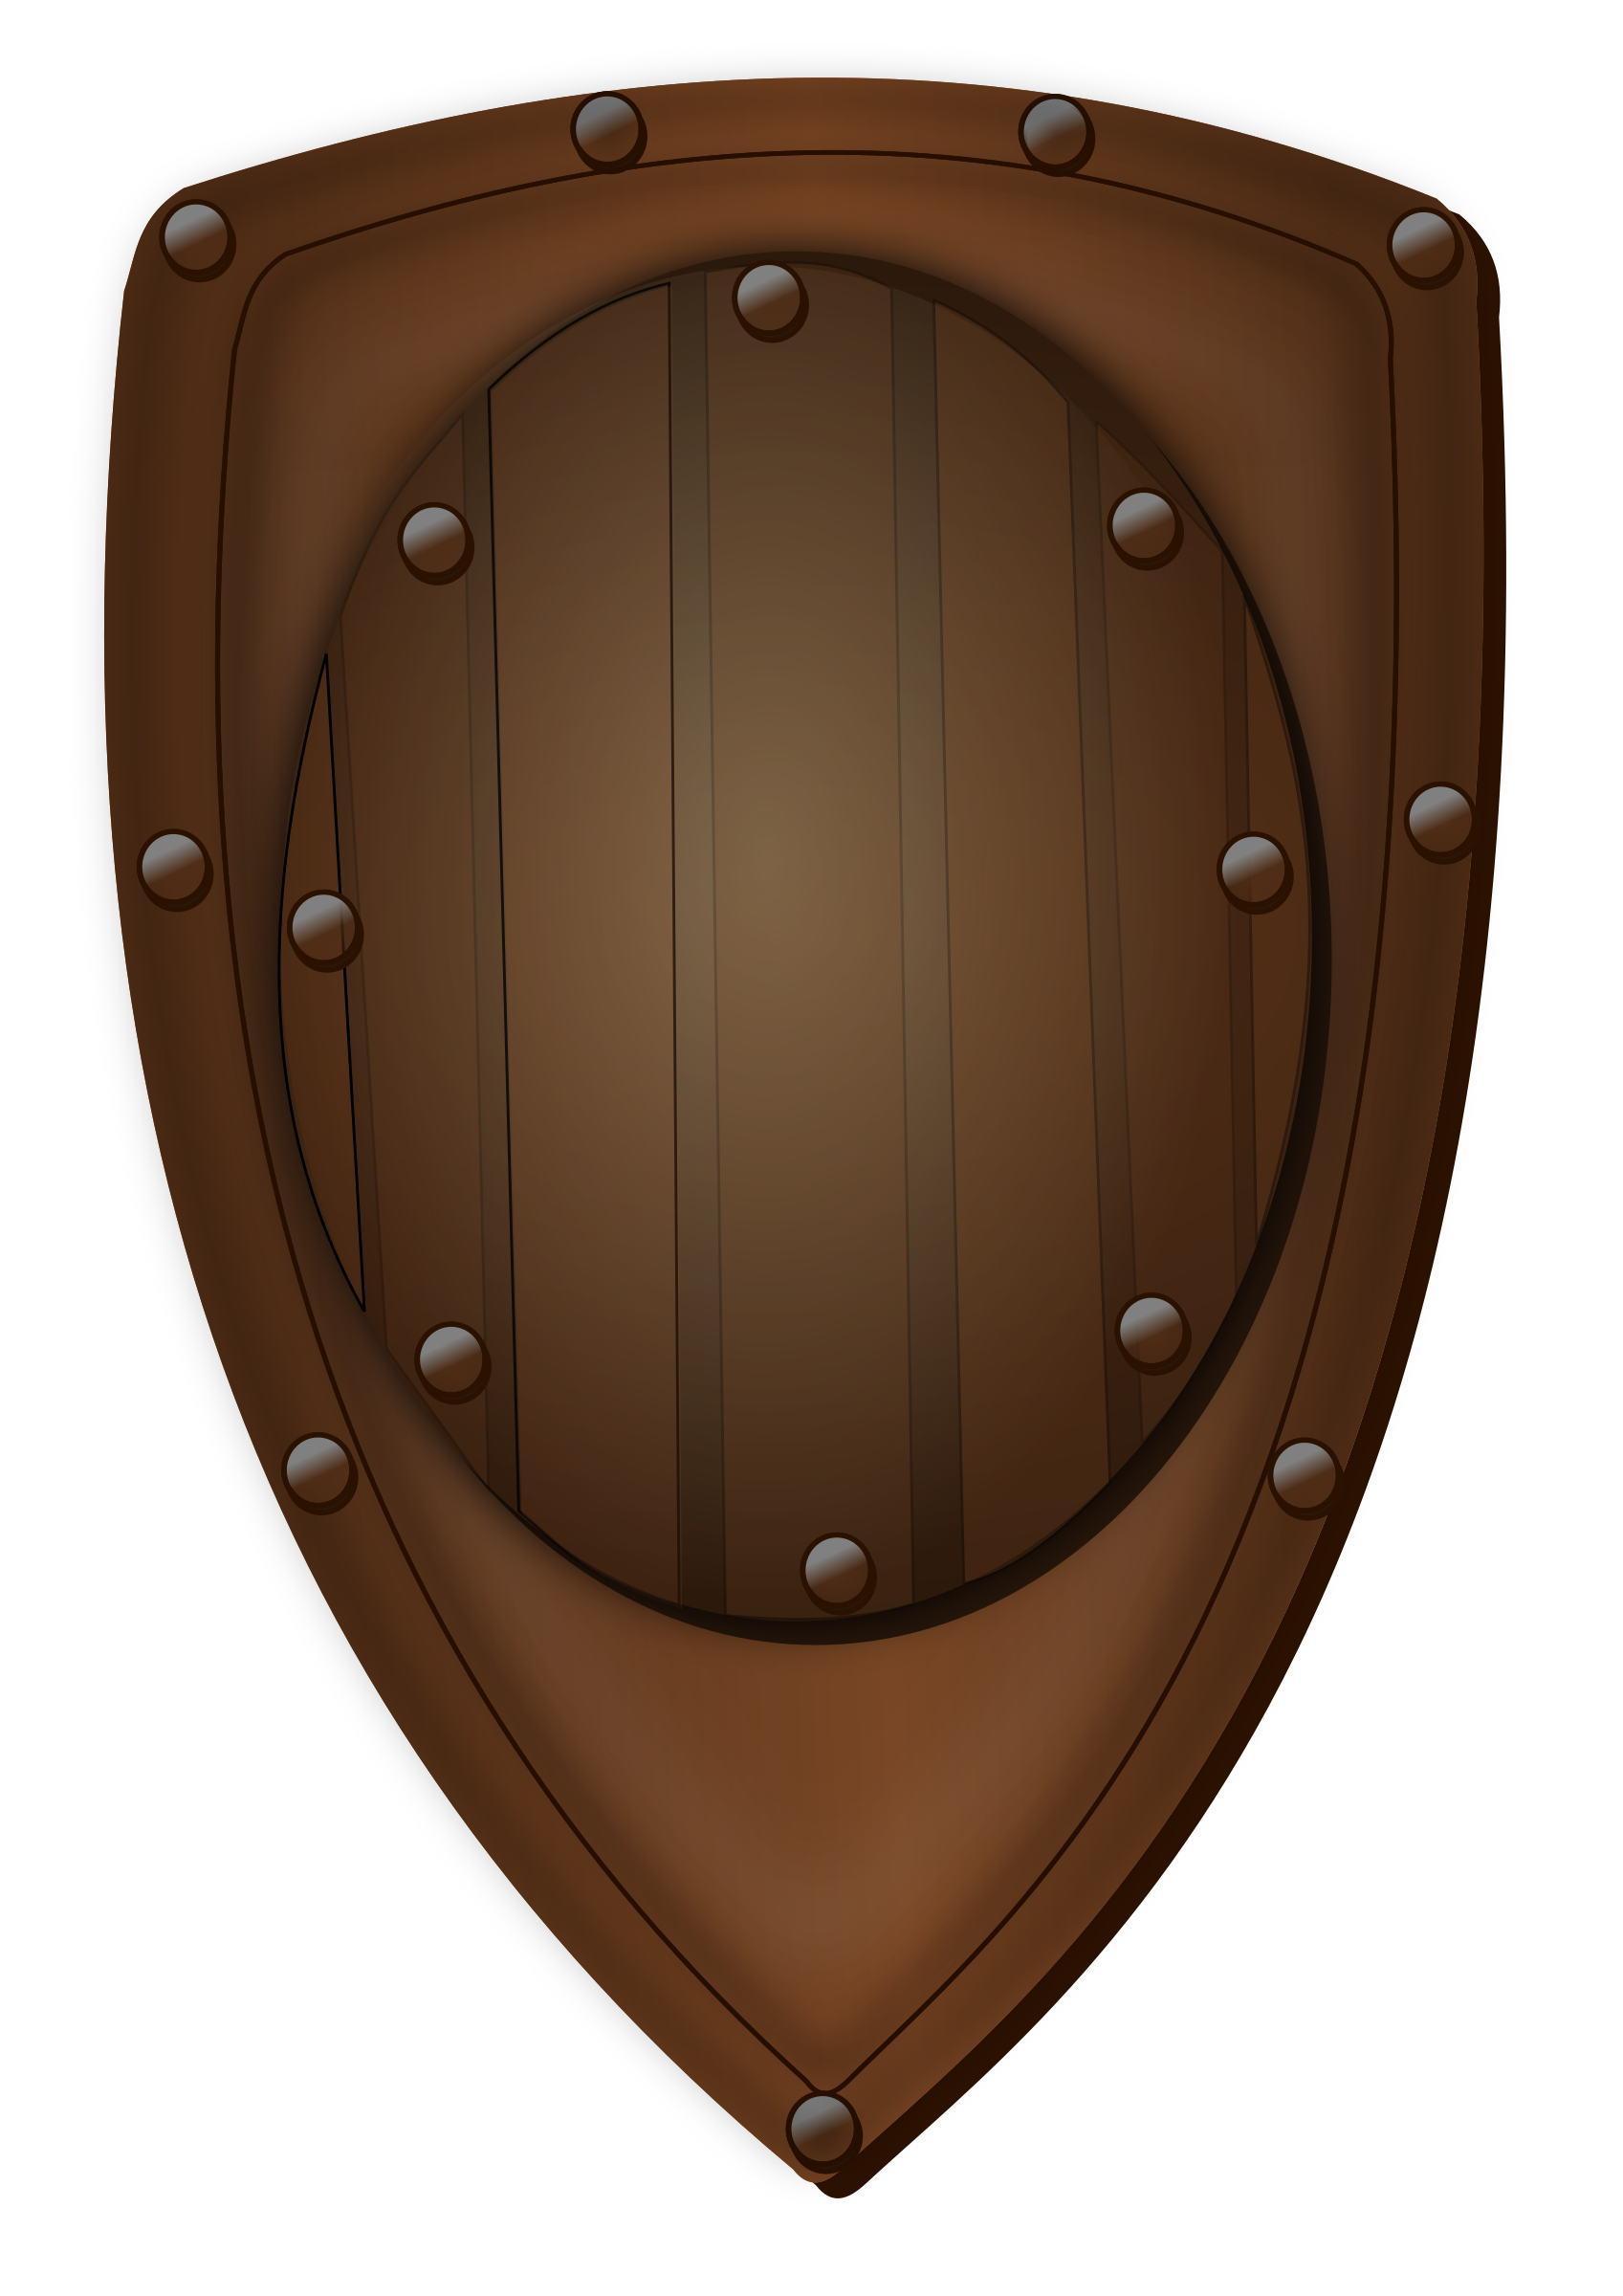 shield by hatalar205